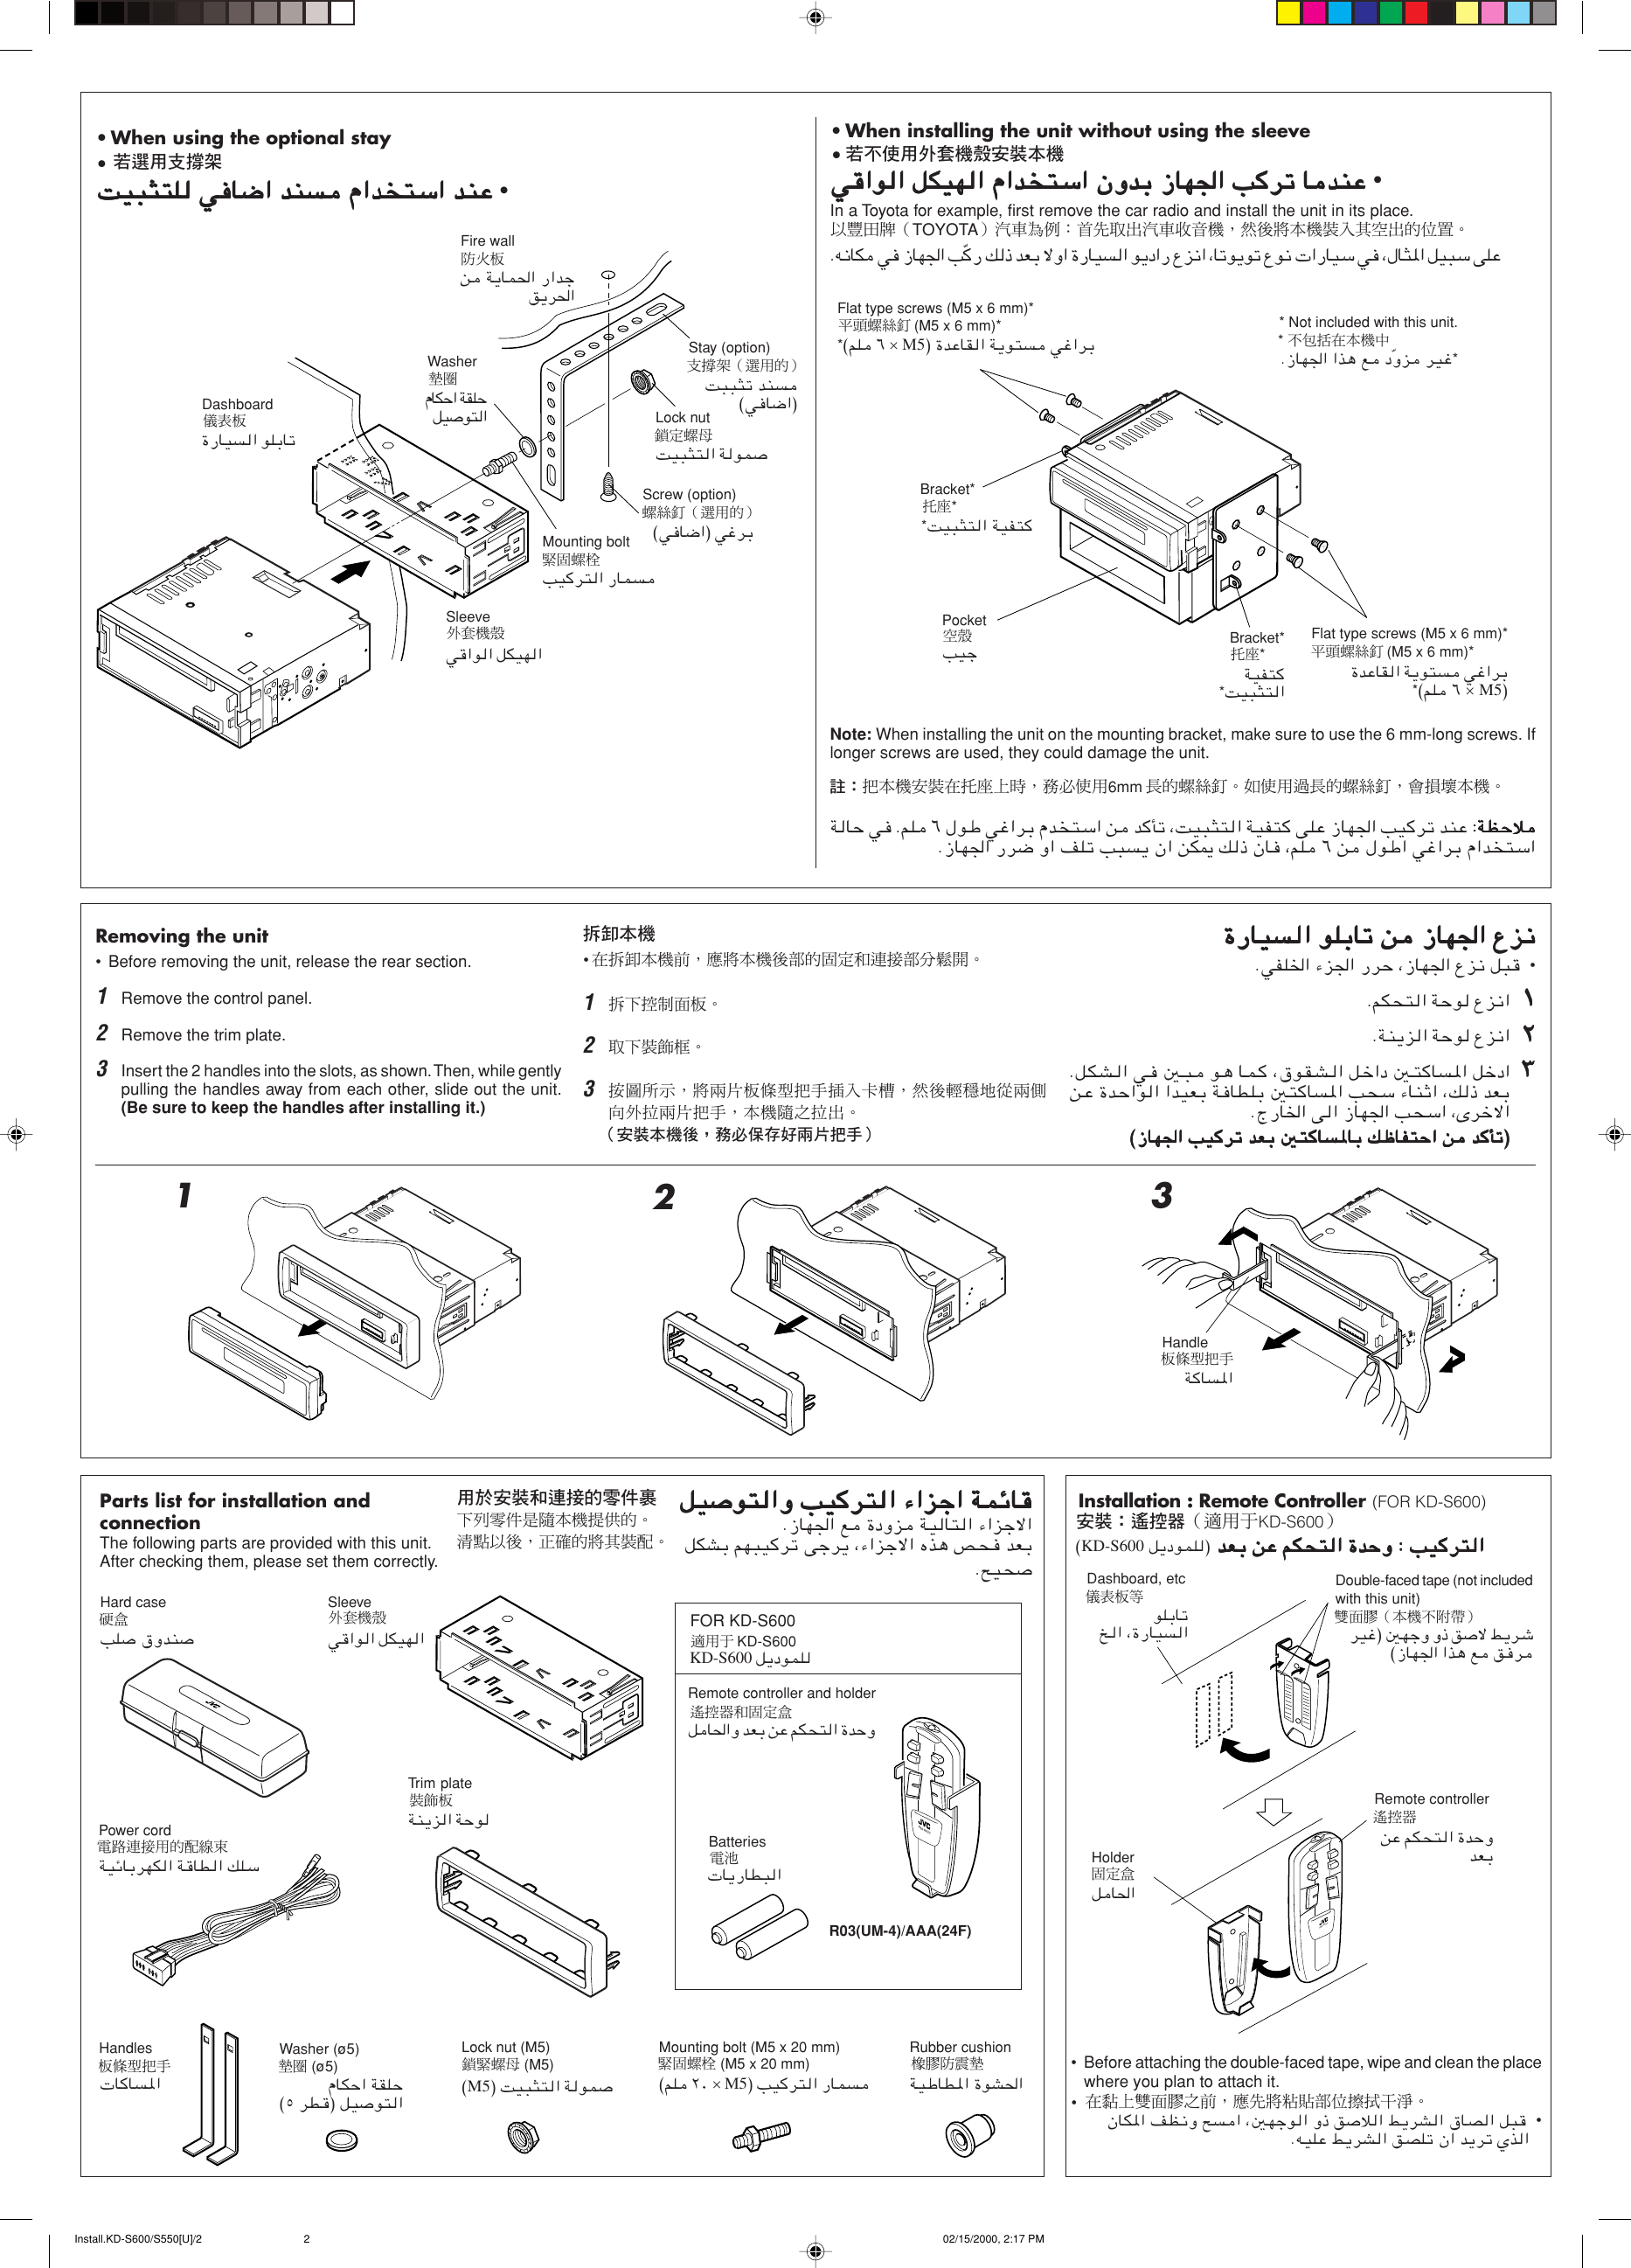 Jvc Kd S550 Wiring Diagram Free Download Likewise S5050 On S600 User Manual Fsun3105 T181 At